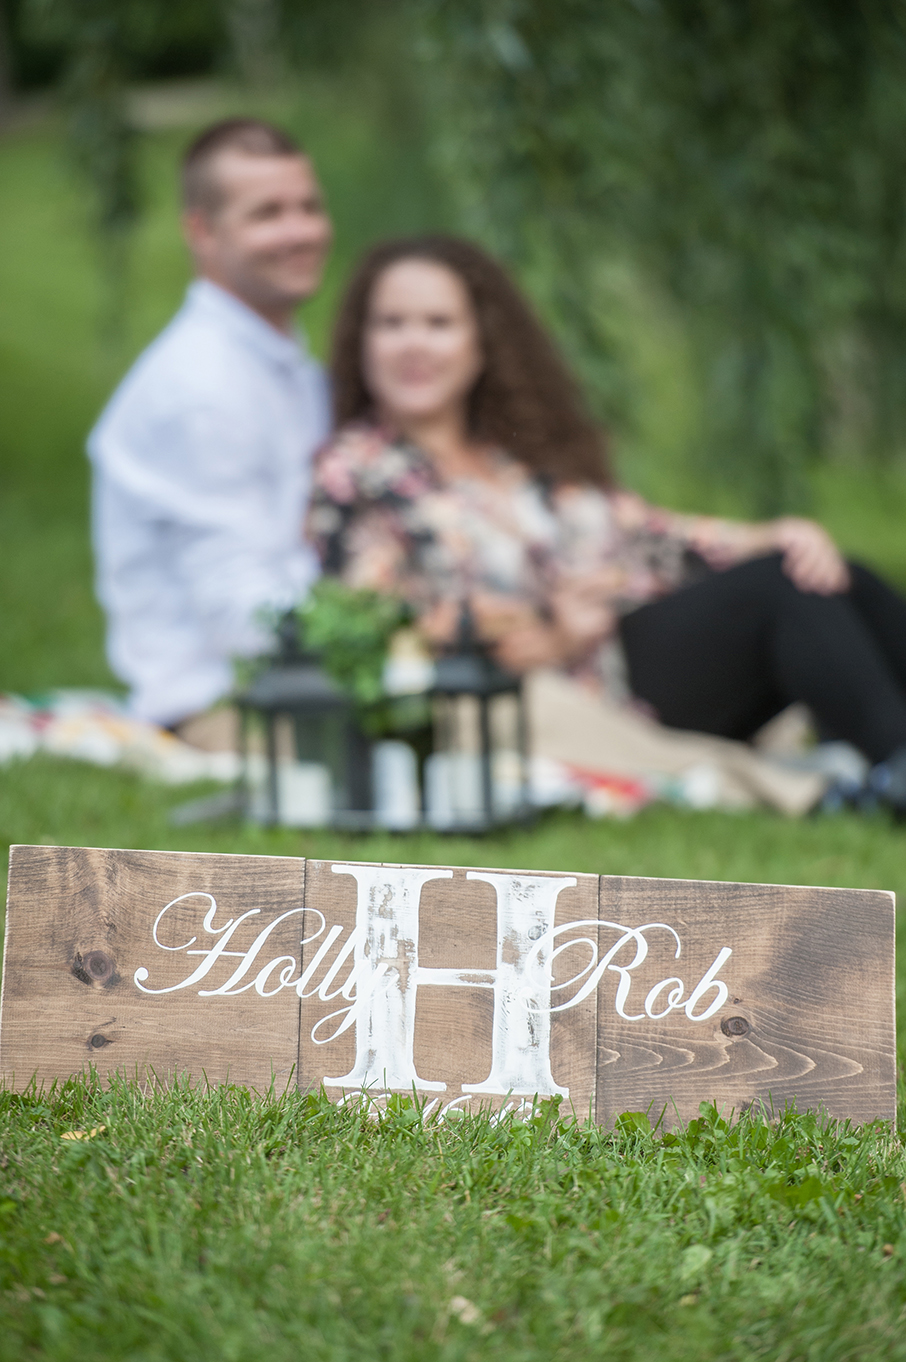 Holly&Rob_EngagementSession-82.jpg